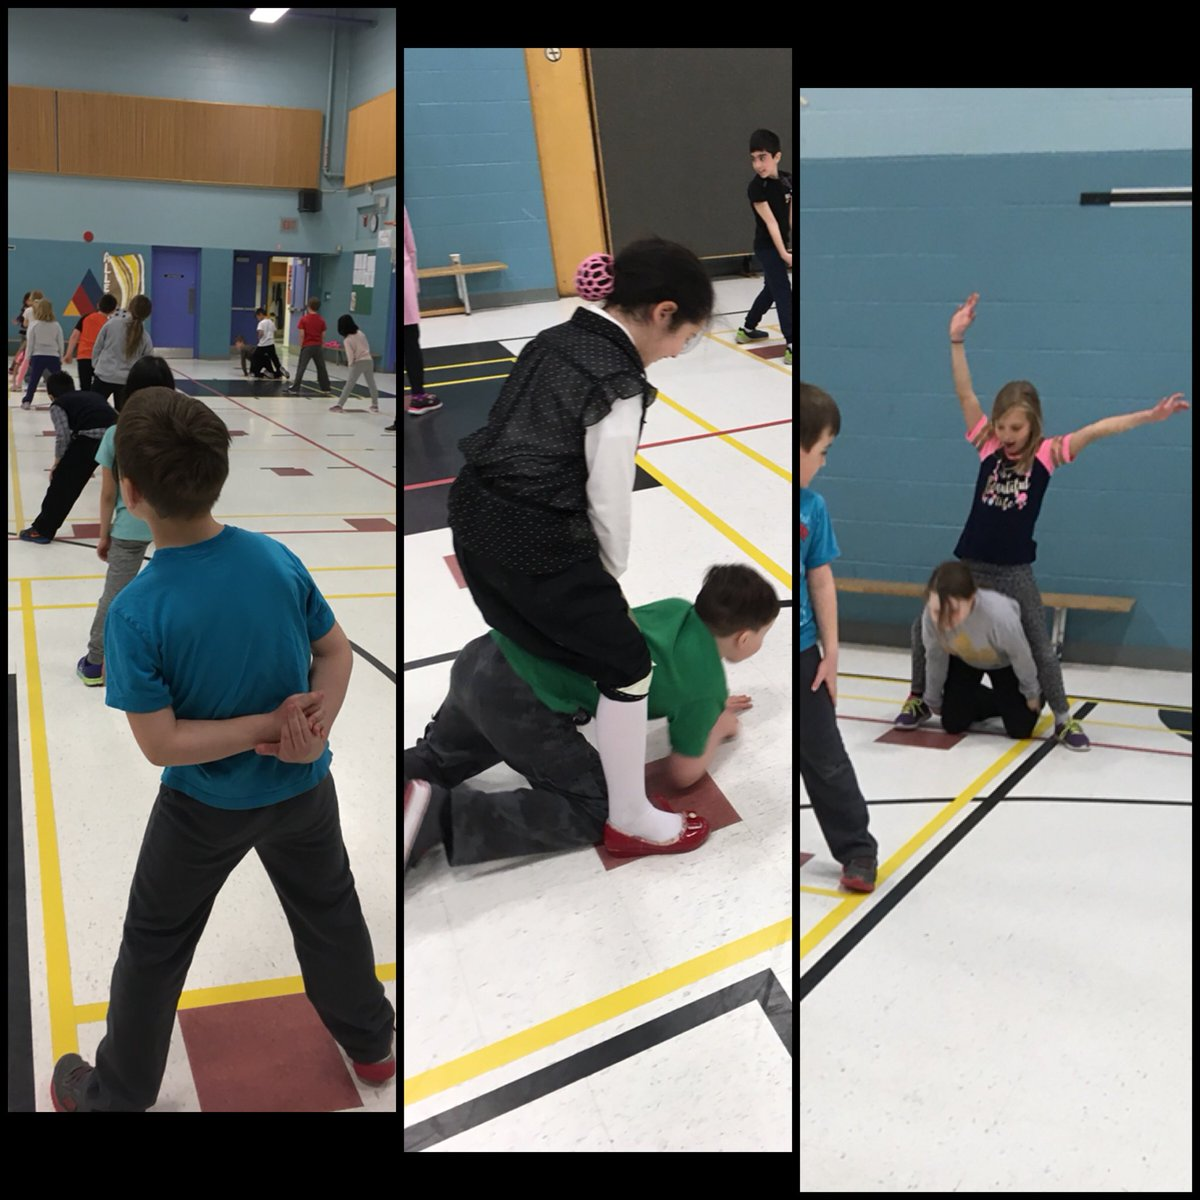 Ms Potvins Class On Twitter We Had A Blast Last Week Doing Relay Circuit Training Races Thank You To Milnegrade3 S For Sharing Your Gym Time With Us